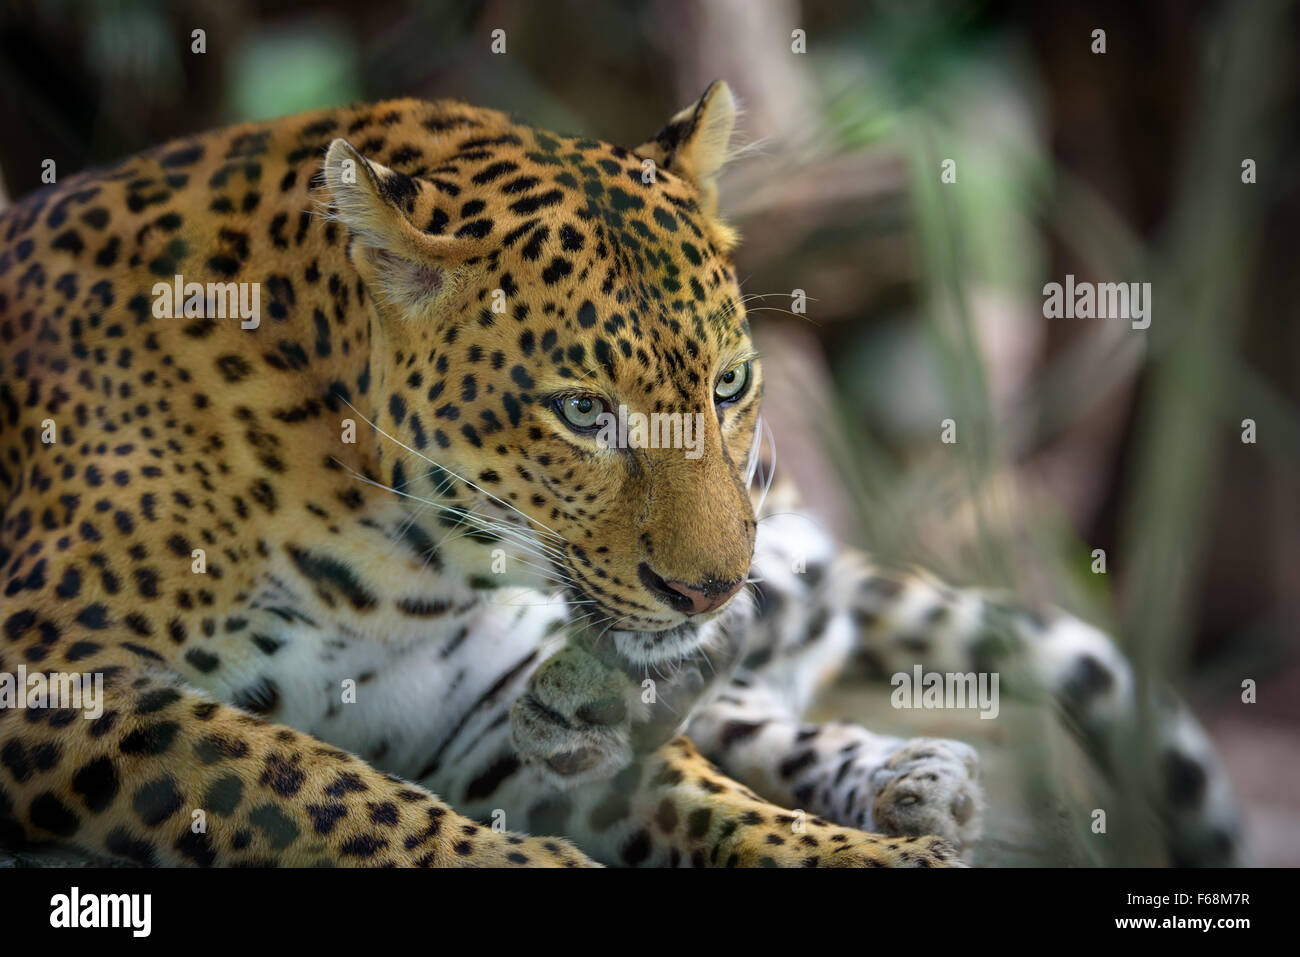 Jaguar femelle se reposer, closeup portrait Photo Stock